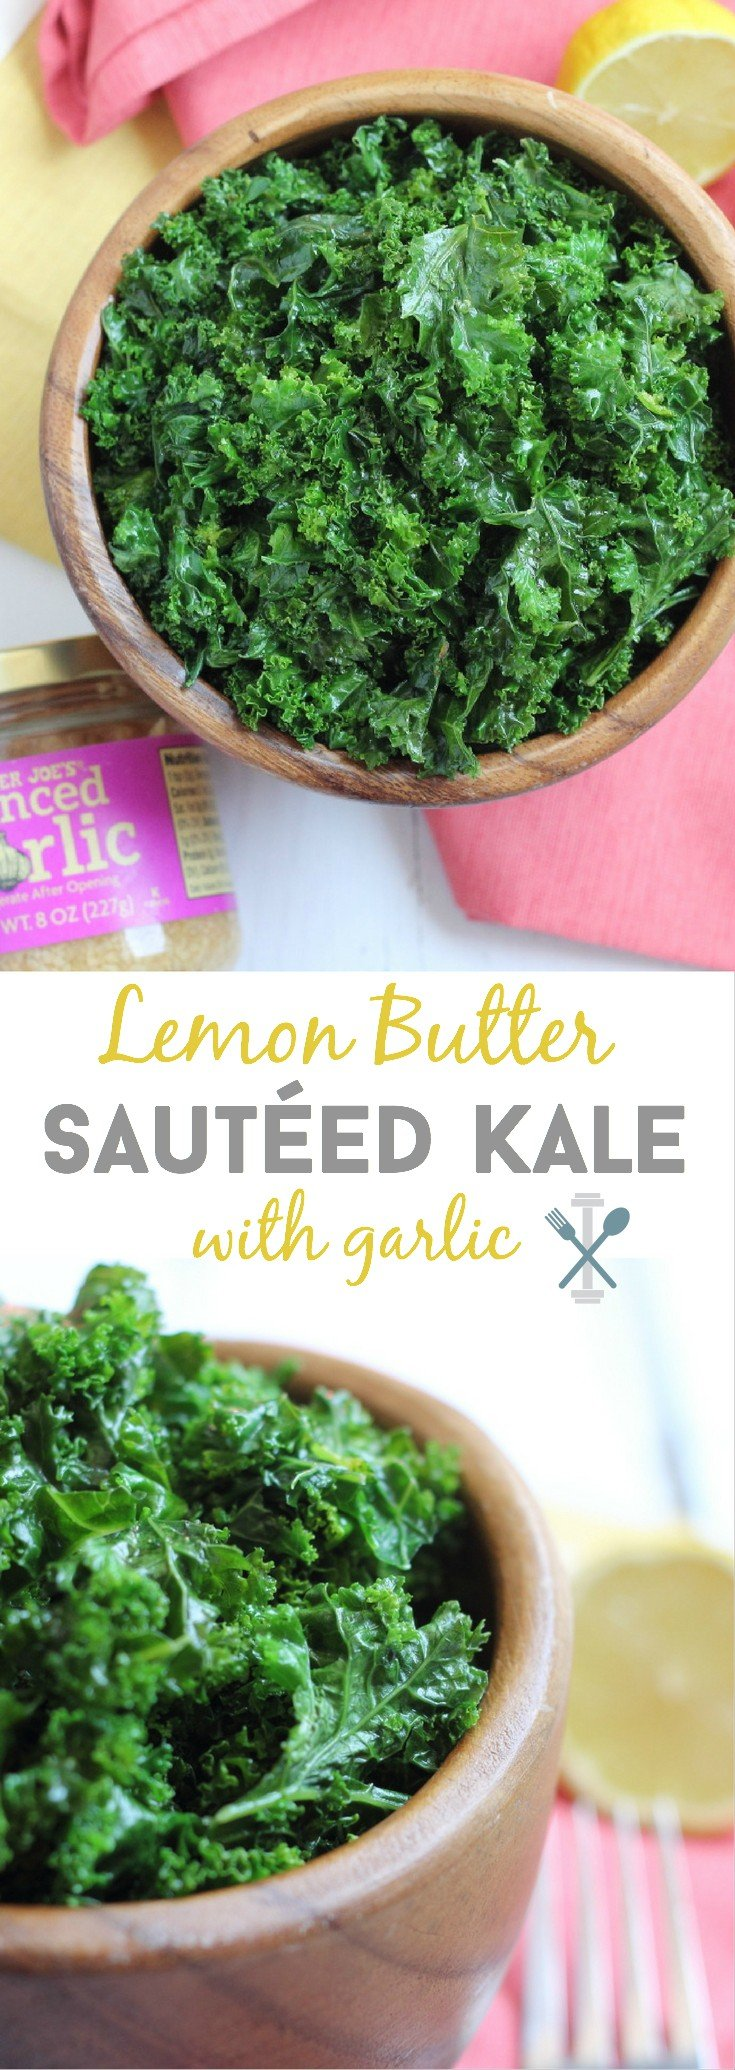 Whole30 compliant - this lemon 'butter' sautéed kale is easy to make and will convert any kale hater! All the flavors combine beautifully for a killer side dish to any dinner.